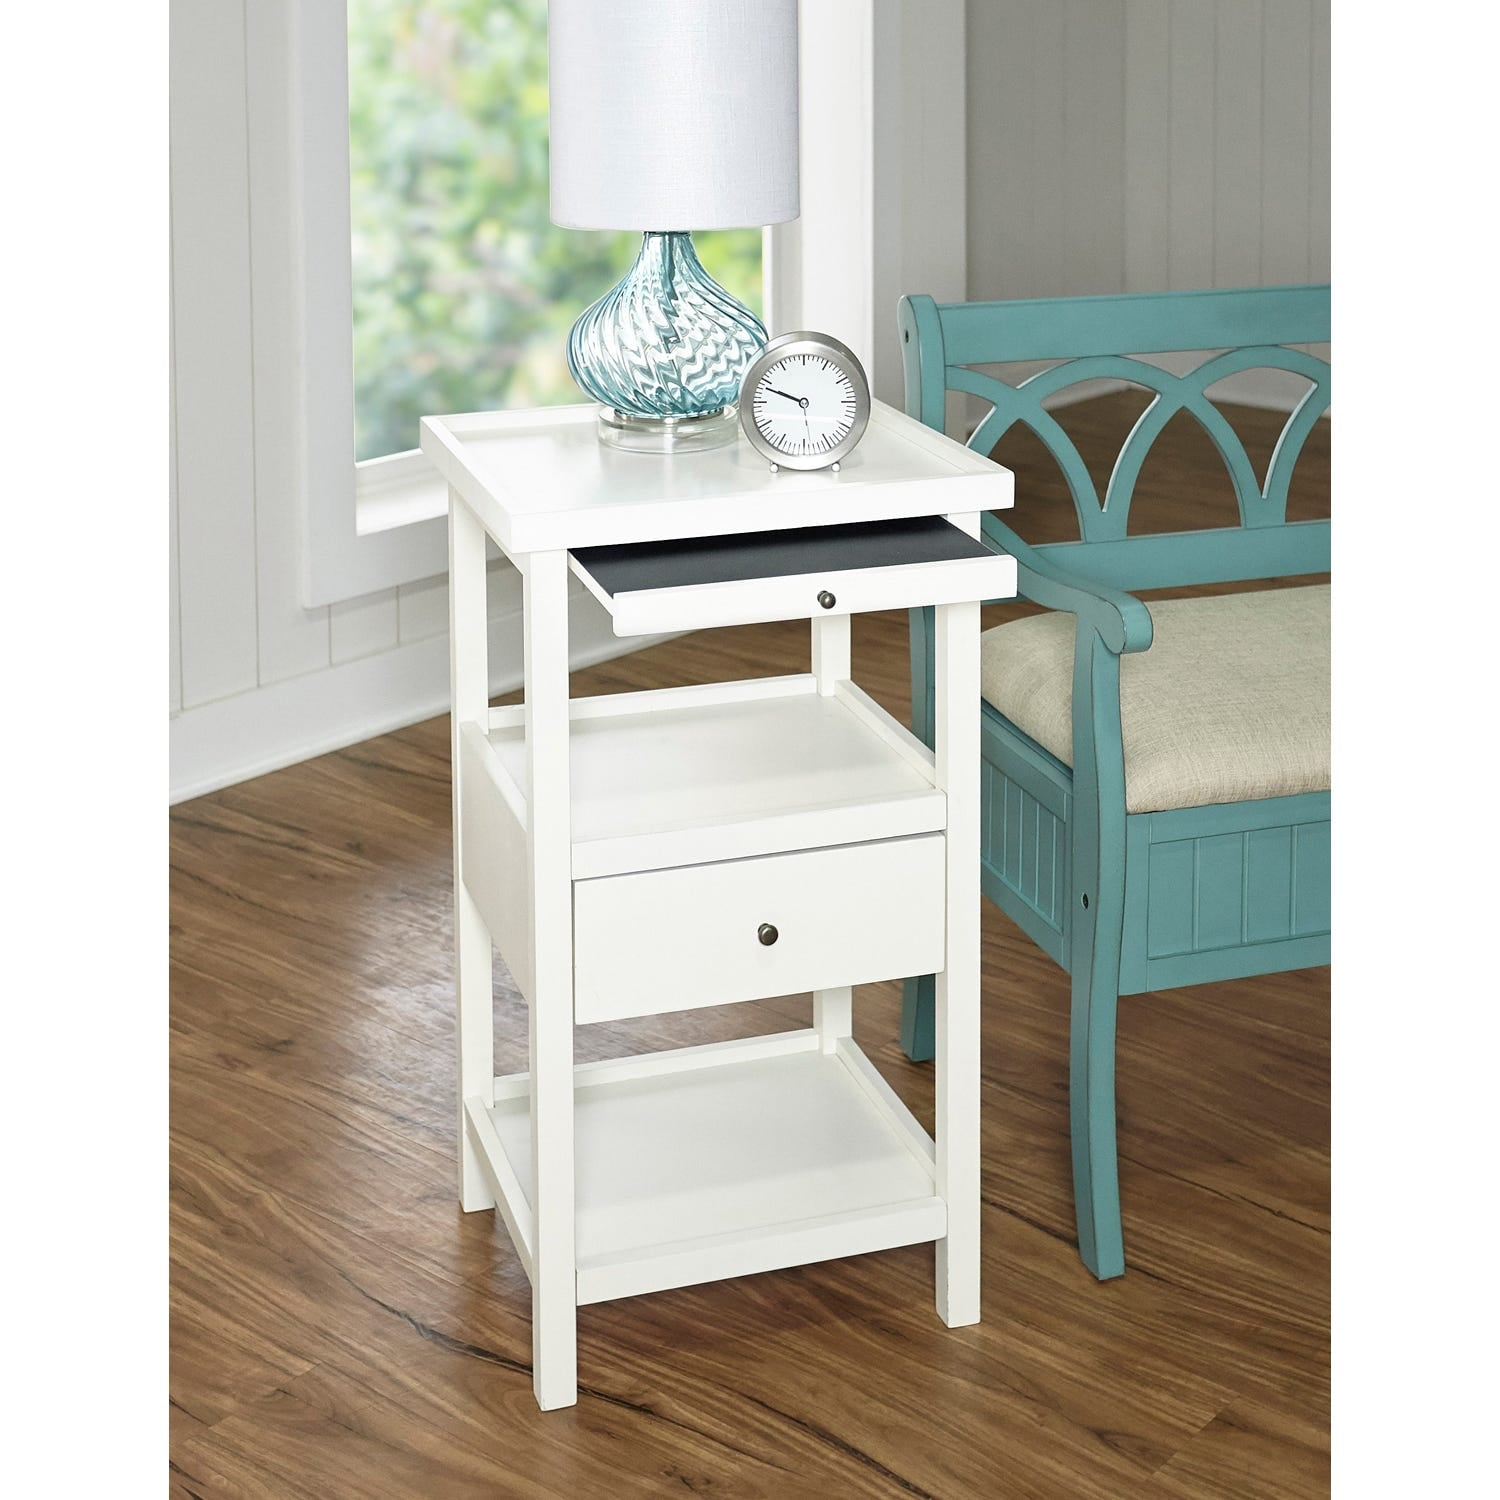 - Palmer White Accent Table With Shelf Small Space Cramping Your